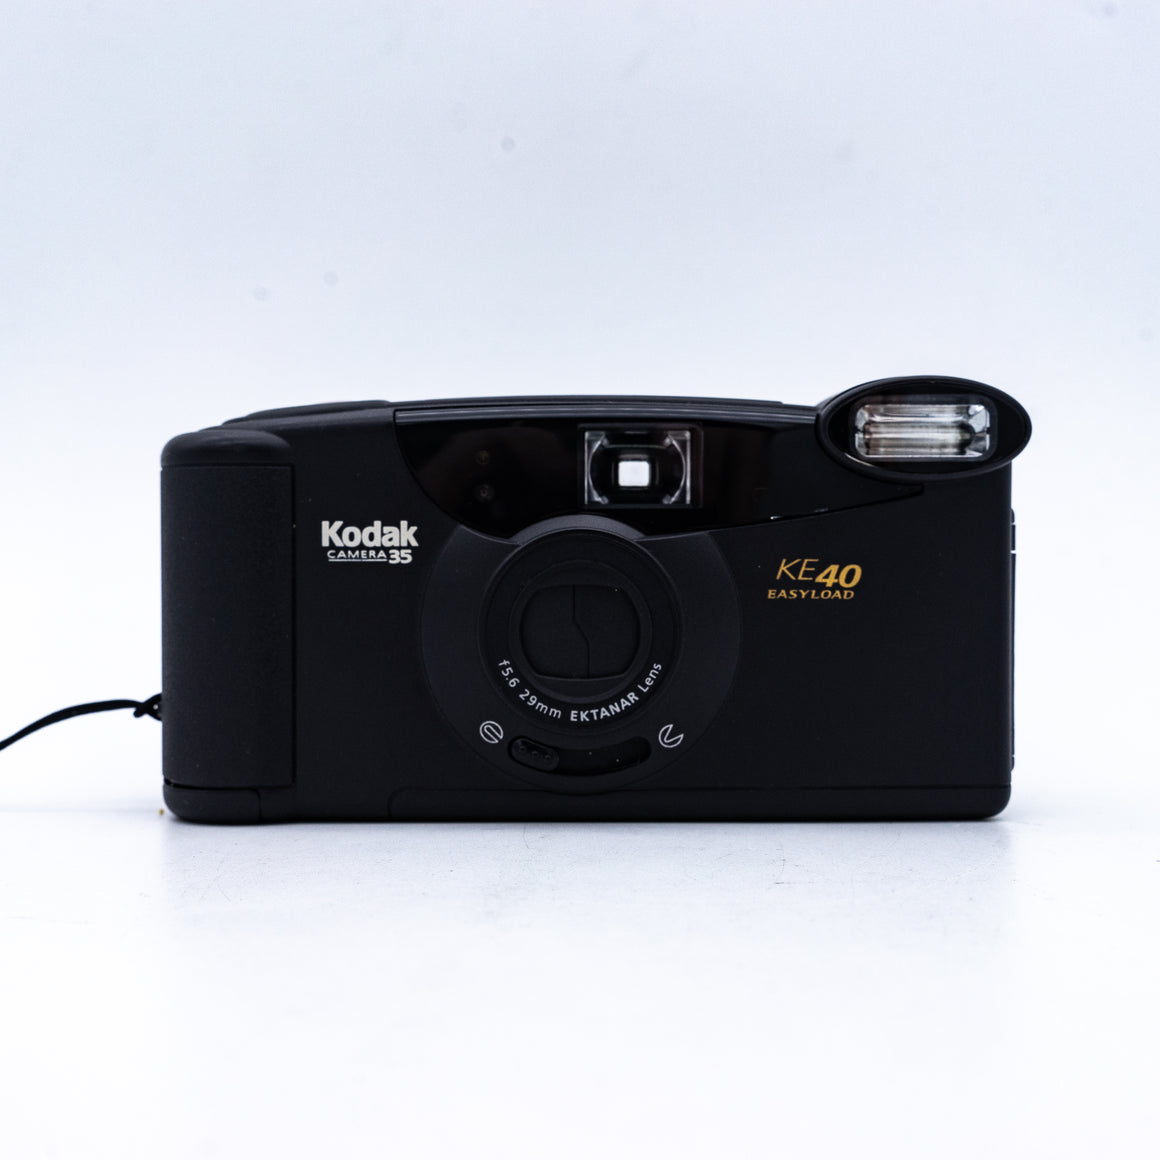 Kodak KE 40 Point and Shoot 35mm Camera with 29mm F5.6 Lens